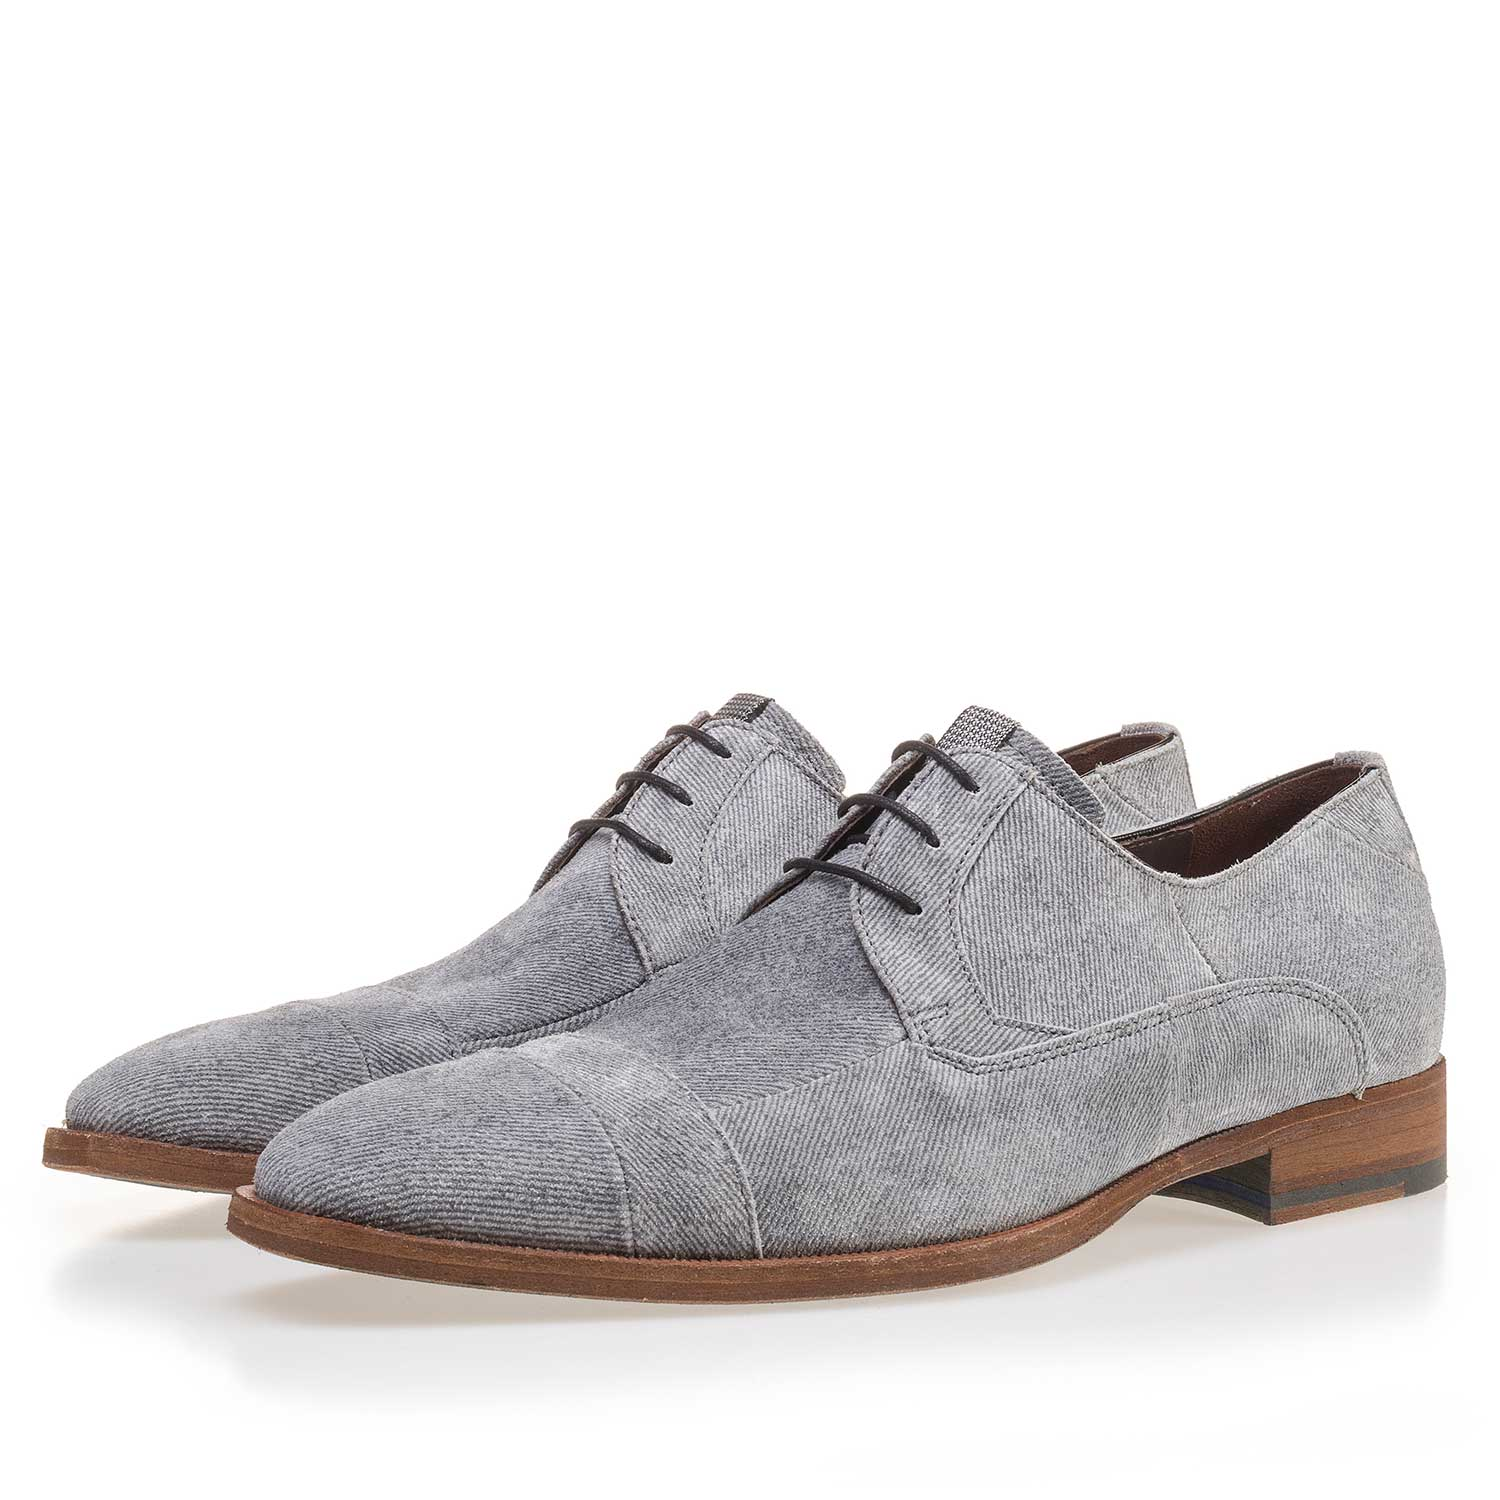 14136/02 - Grey suede leather lace shoe